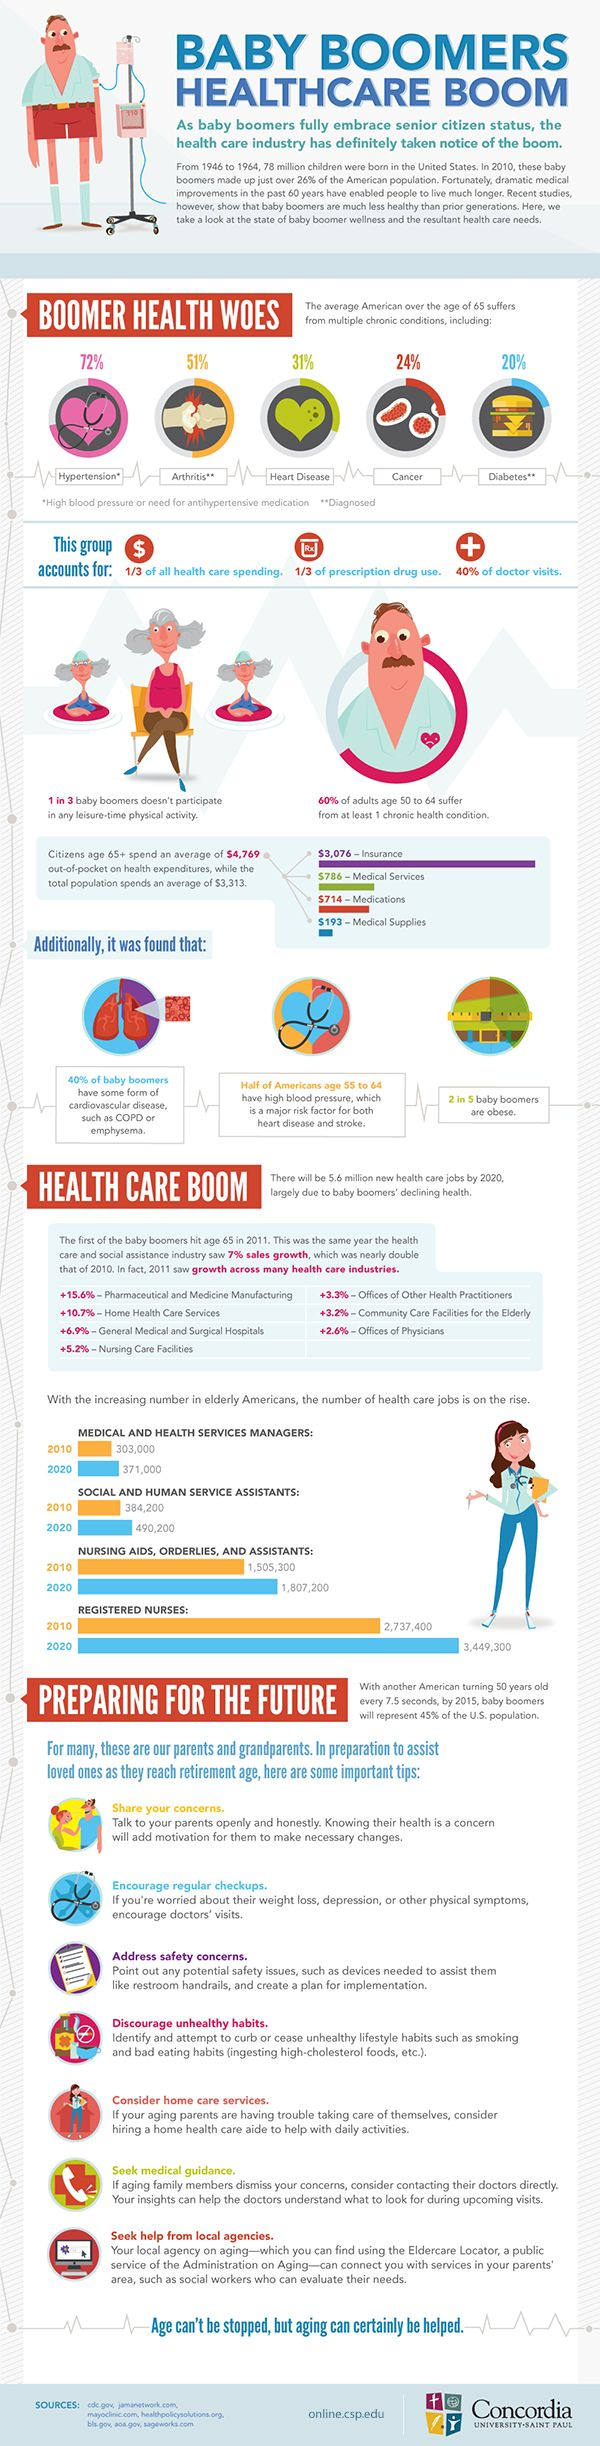 HOW THE BABY BOOMER GENERATION IS CHANGING THE U.S HEALTHCARE SYSTEM